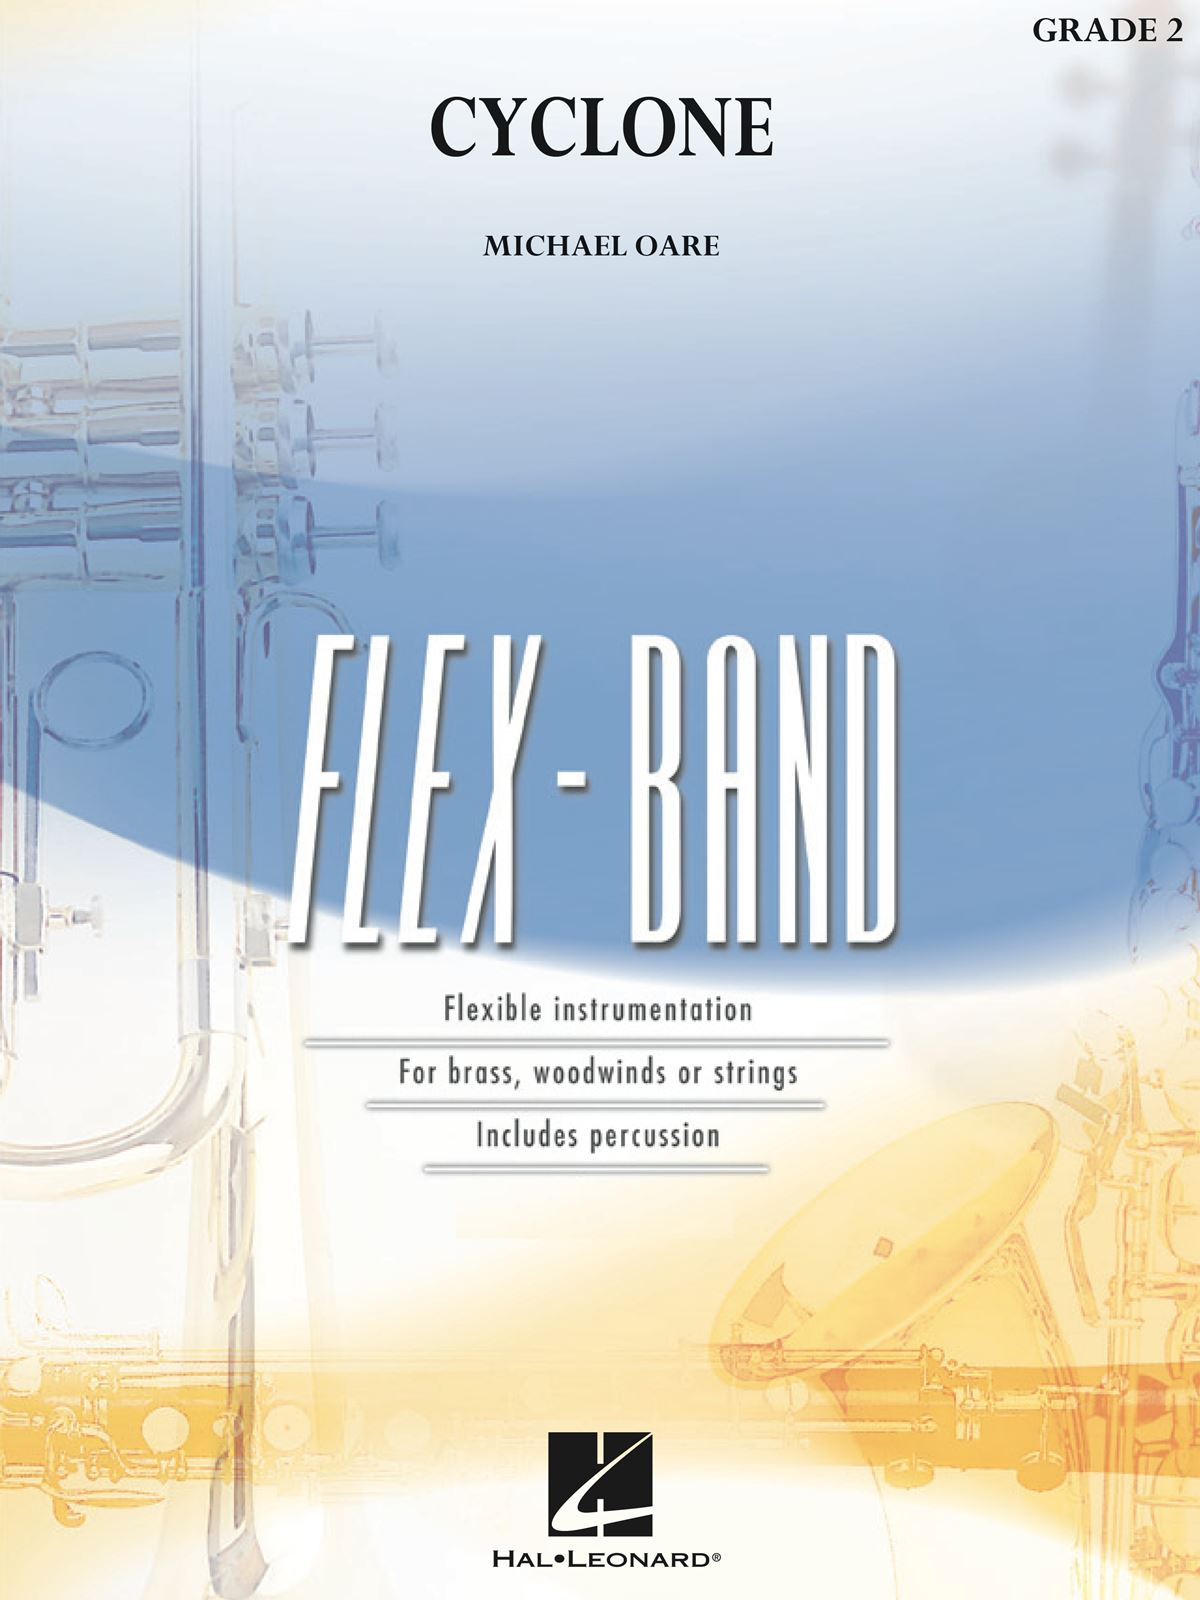 Michael Oare: Cyclone: Flexible Band: Score and Parts